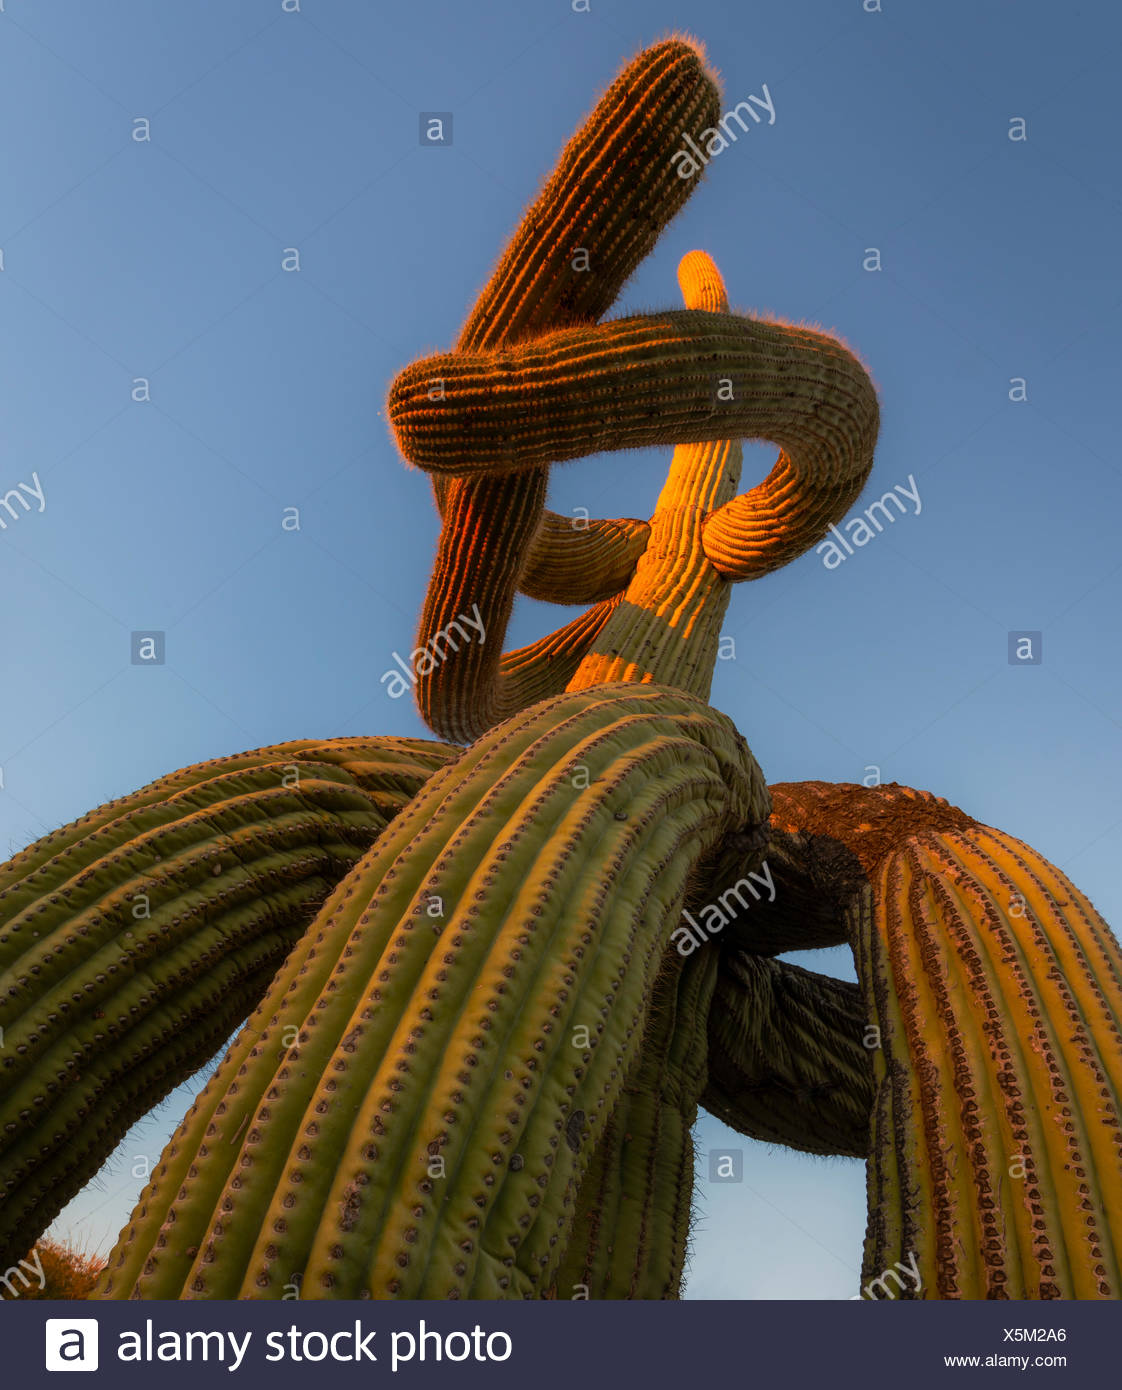 Low angle view of Saguaro cactus (Carnegiea gigantea) with twisted lowered arms drooping to the ground, a result of frost damage - Stock Image